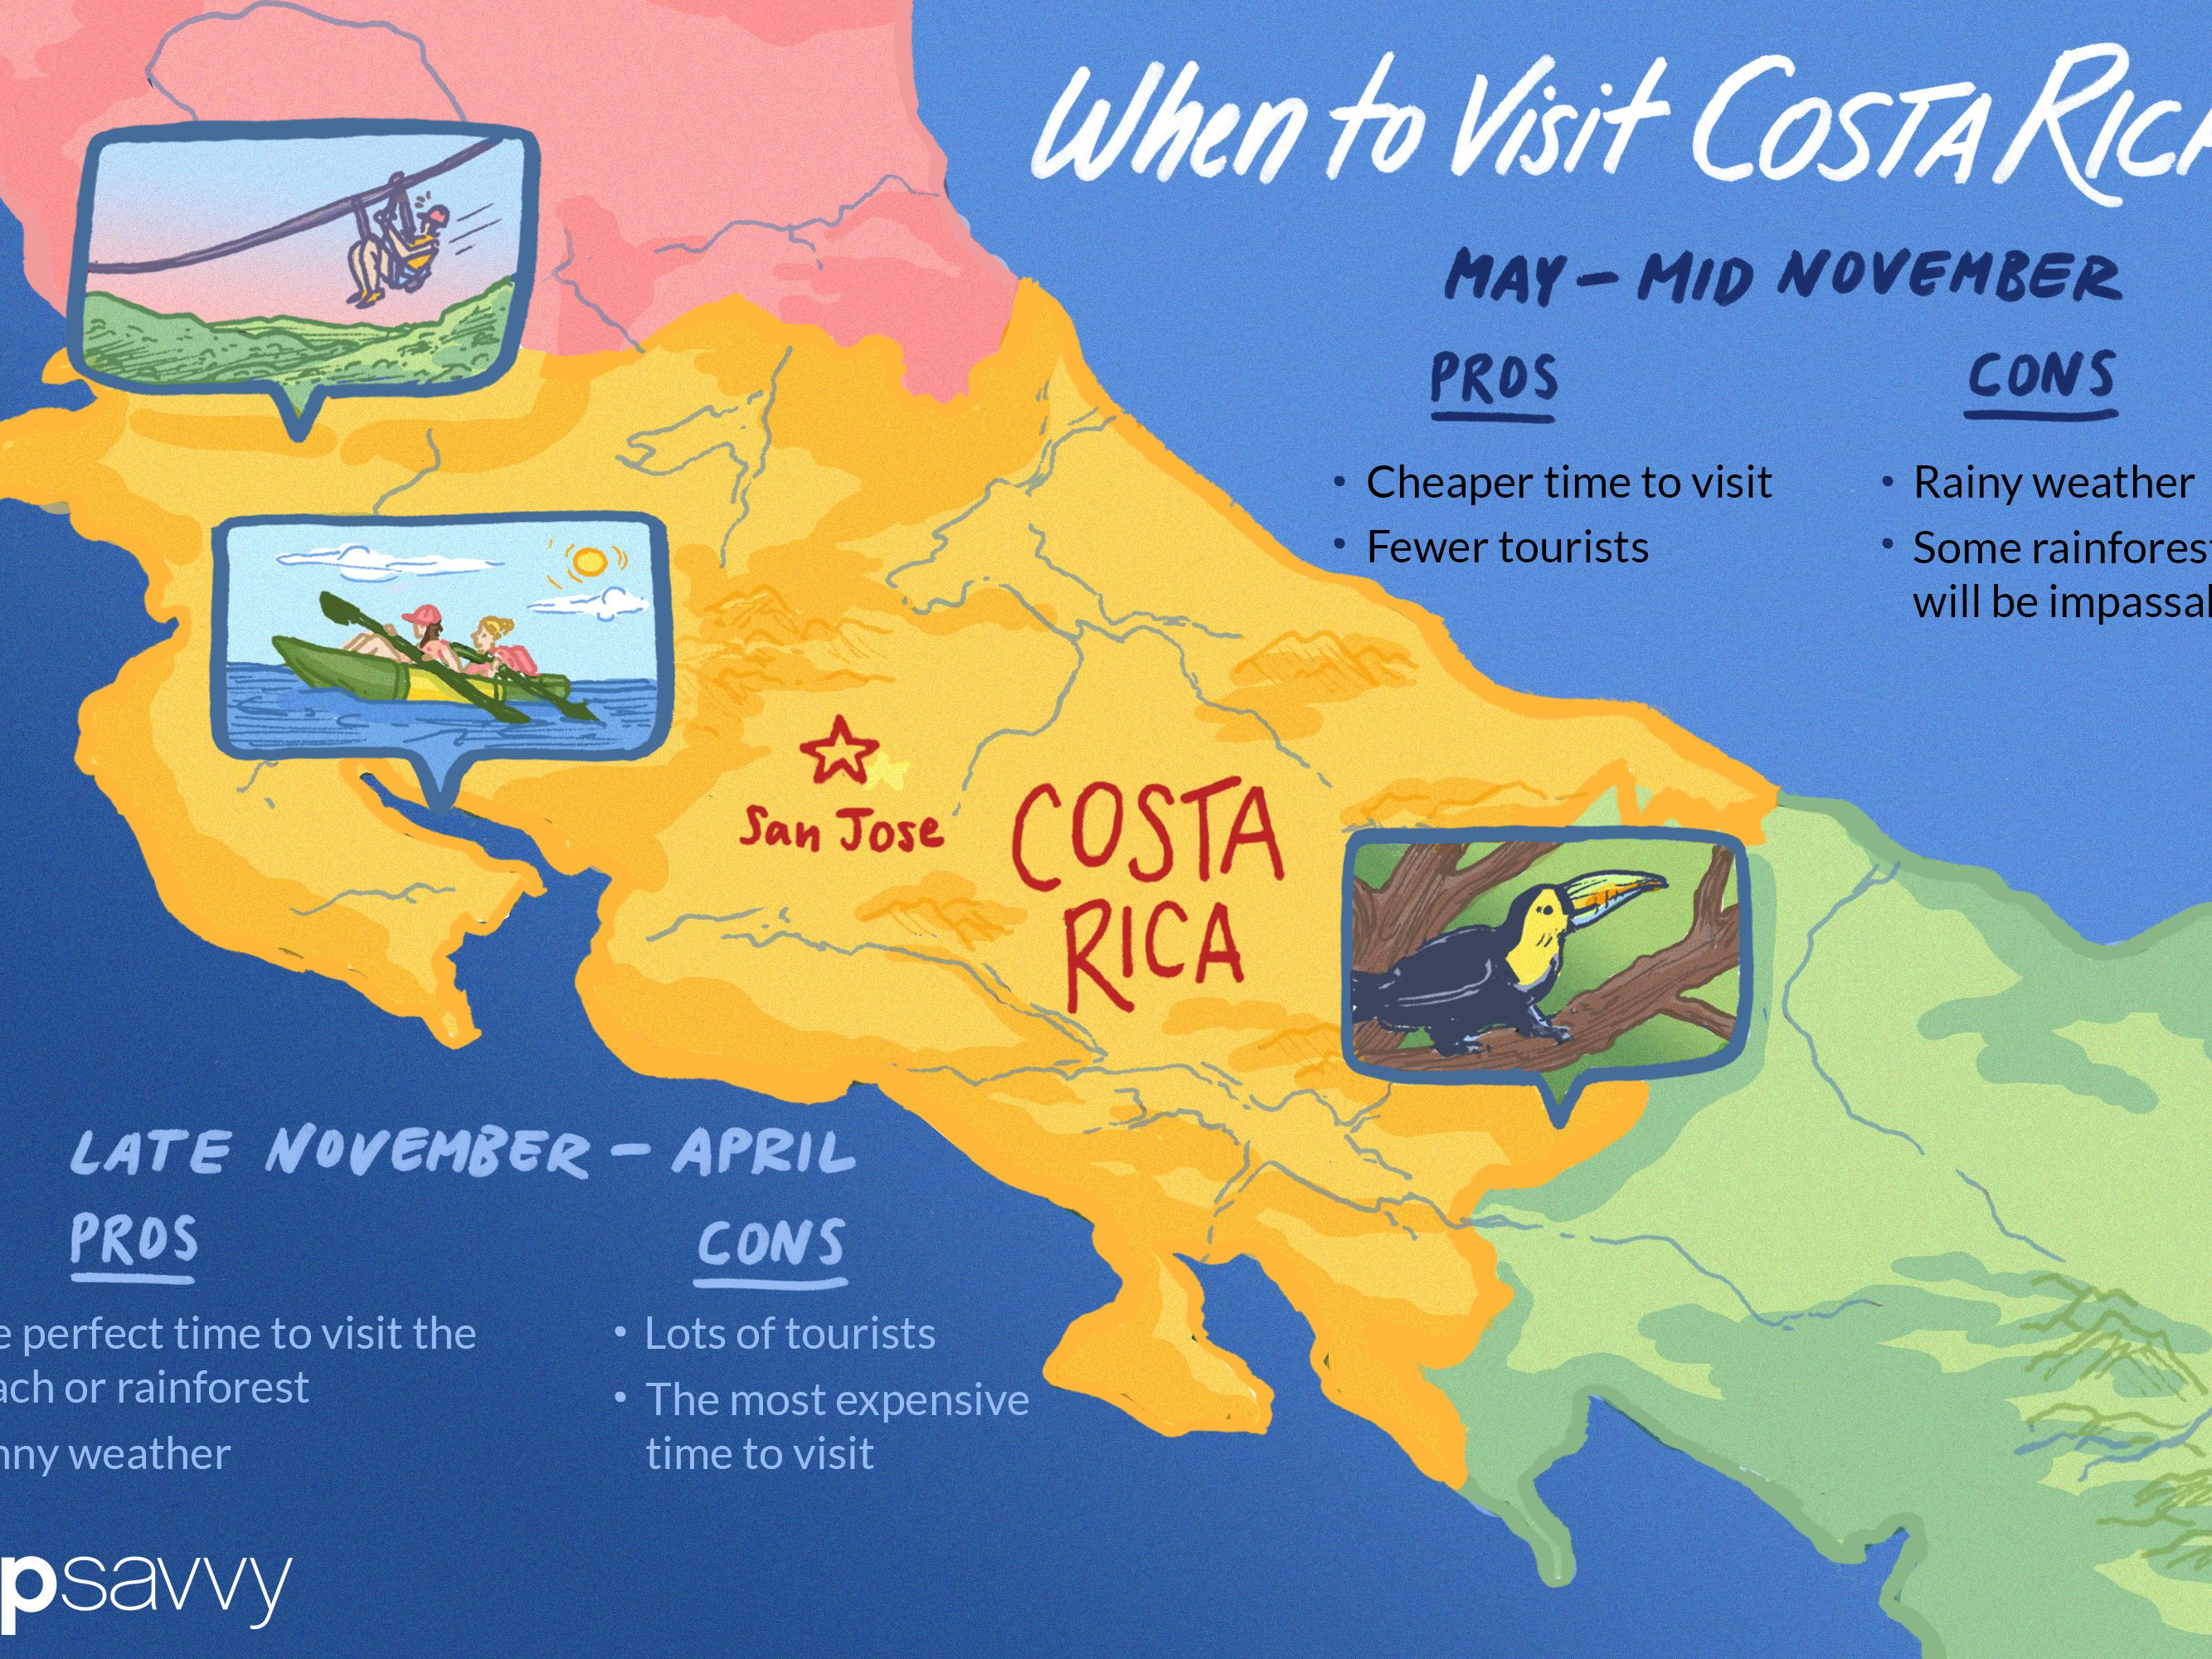 costa rica weather map The Best Time To Visit Costa Rica costa rica weather map